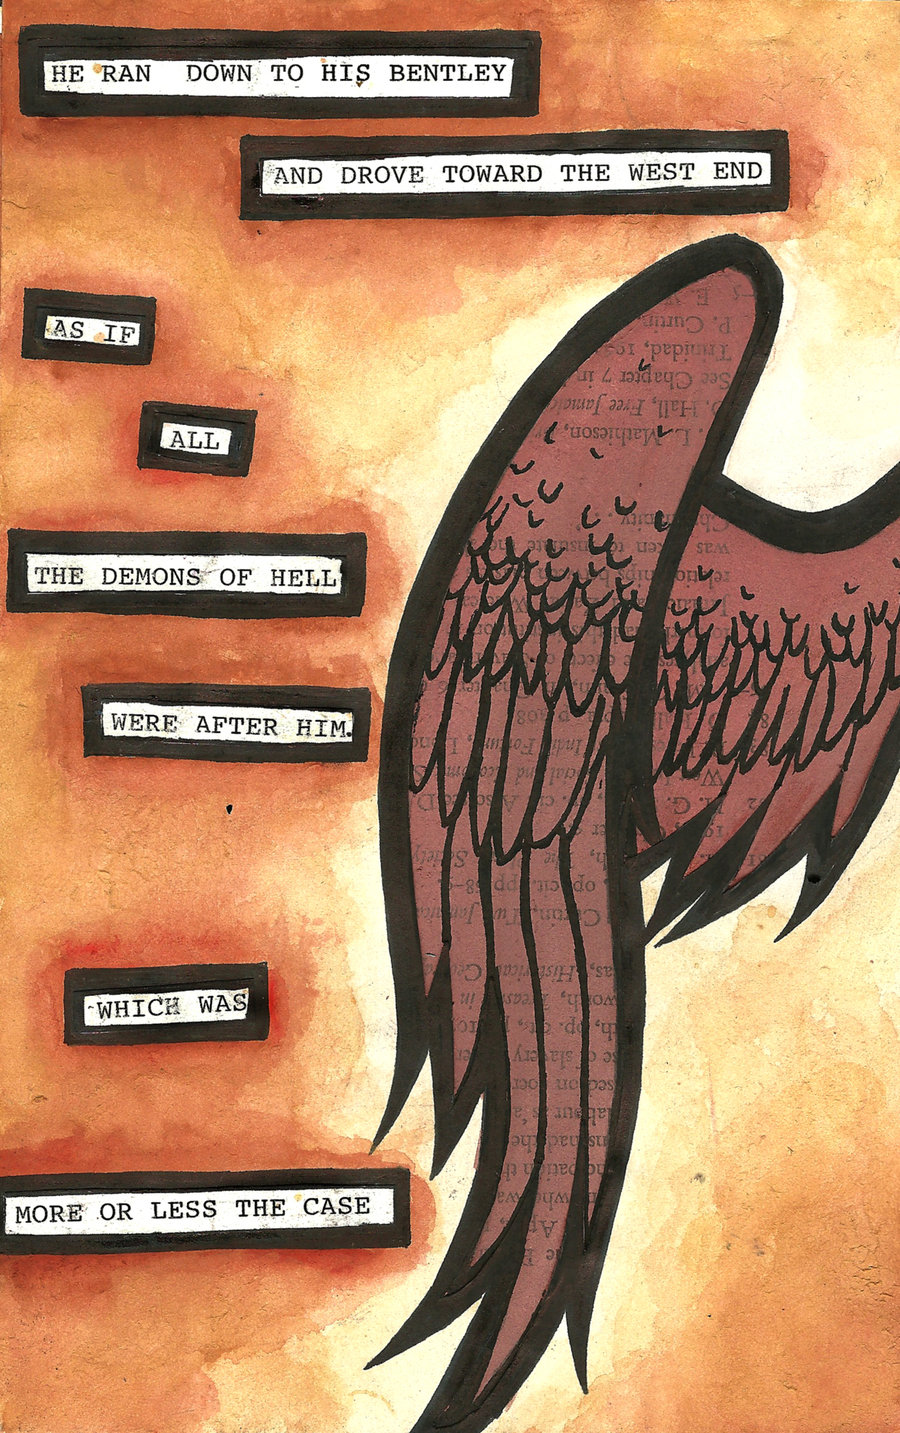 ecafdefececeb-good-omens-blackout-poetry-wallpaper-wp560462